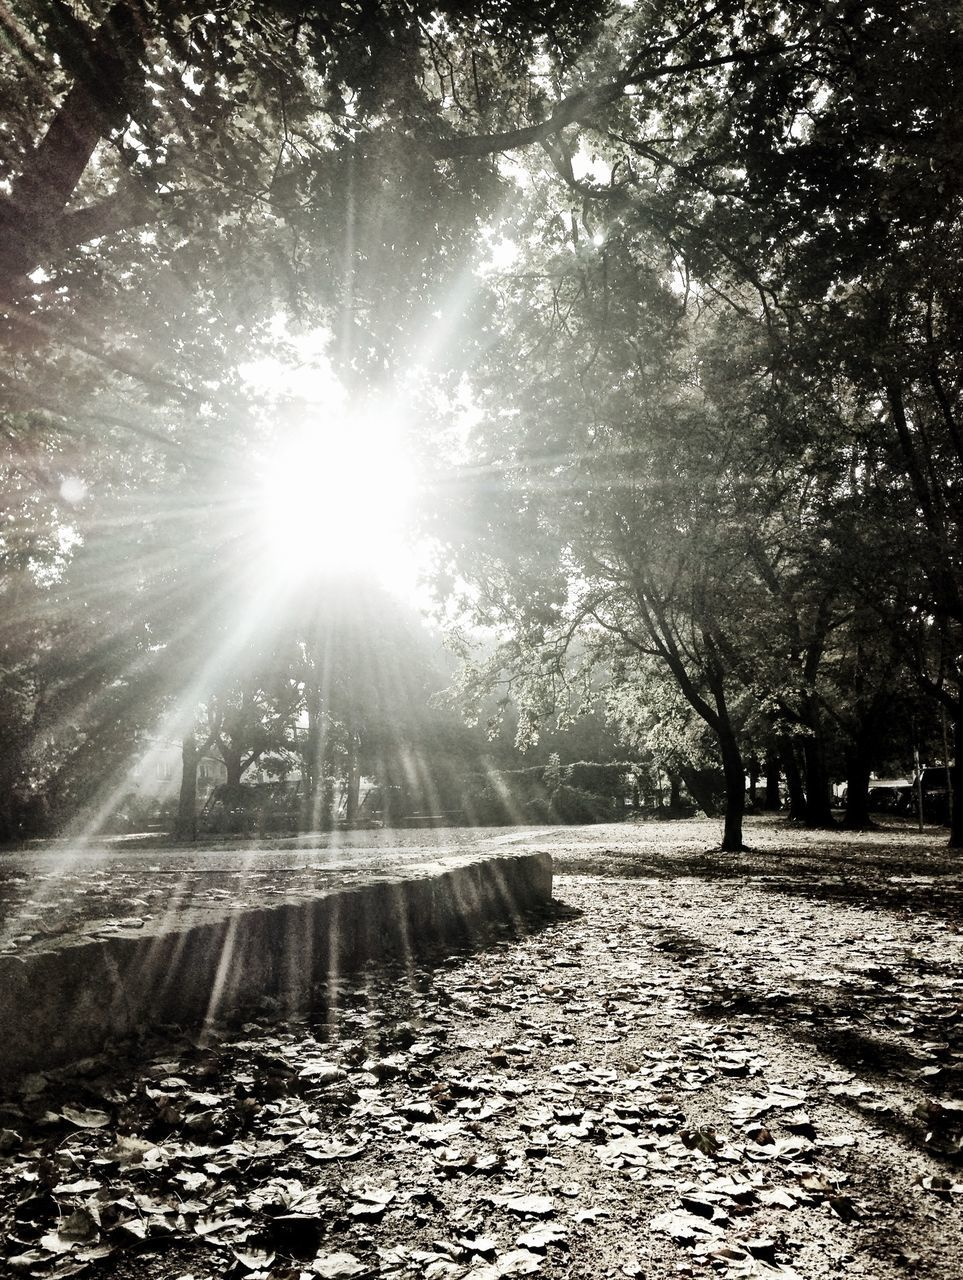 sunbeam, lens flare, sunlight, sun, tree, nature, tranquility, beauty in nature, outdoors, tranquil scene, scenics, no people, day, leaf, forest, sky